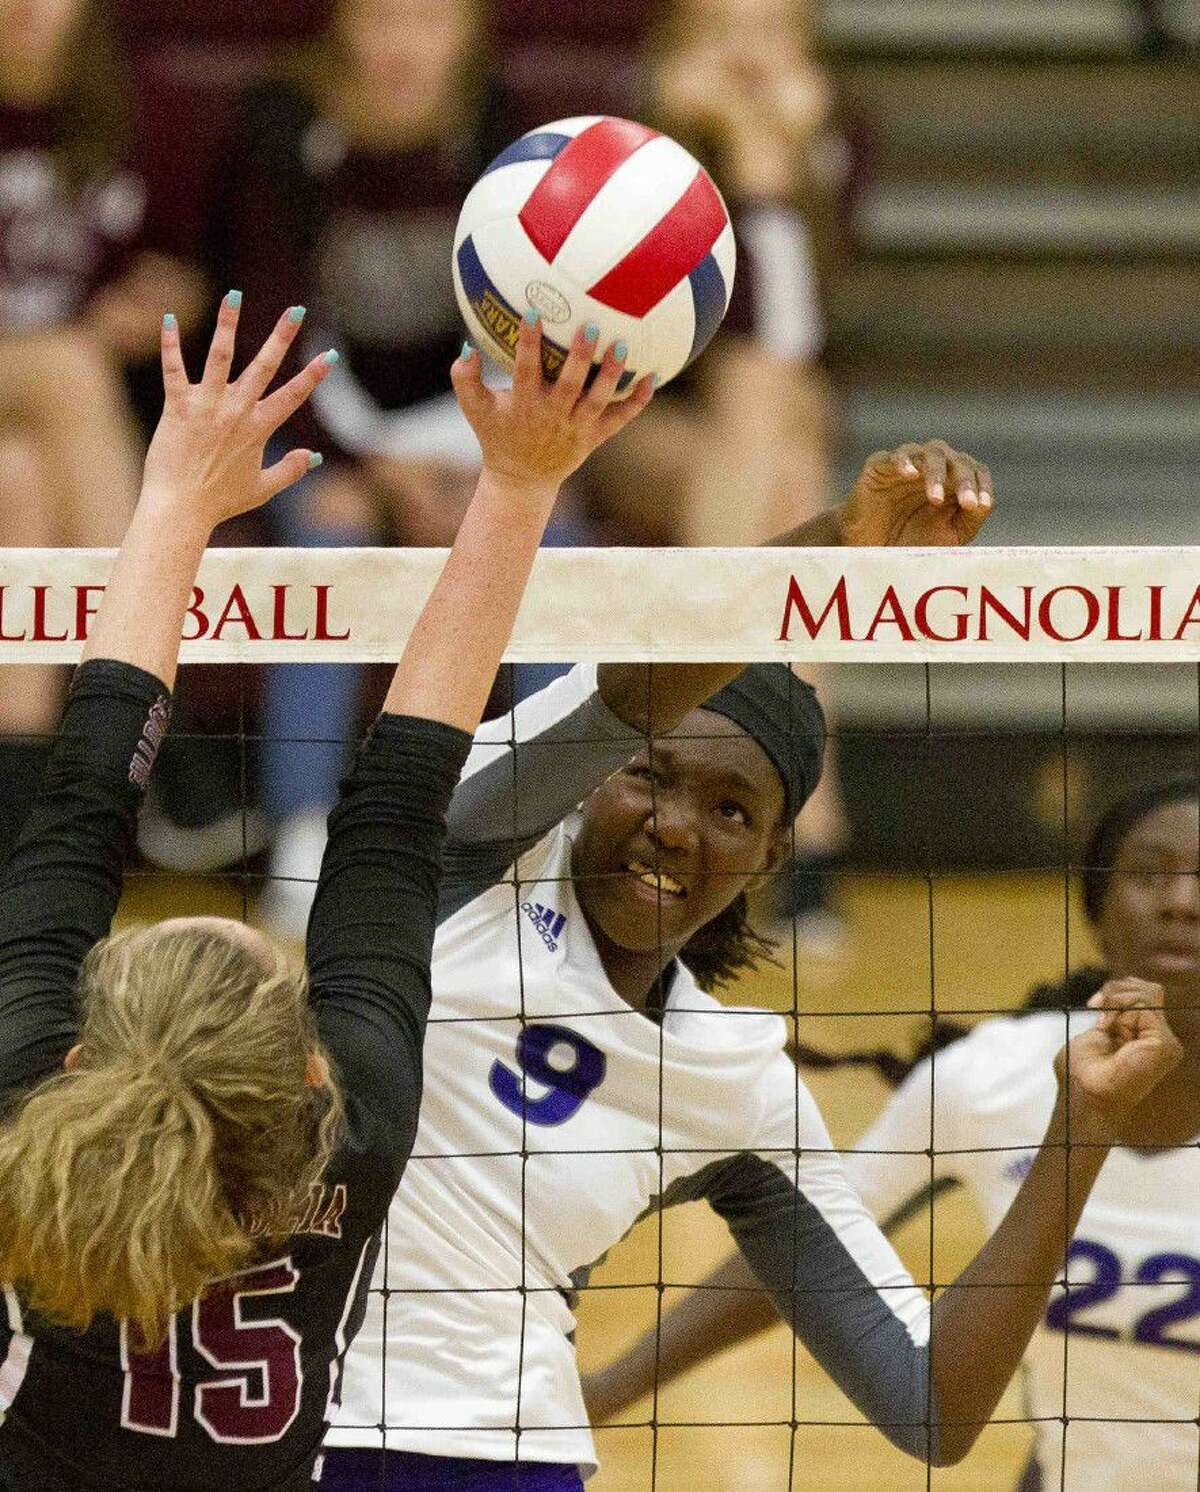 Willis' De'Janae Gilmore gets a shot past a Magnolia blocker during a match at the Volley-Battle tournament Friday at Magnolia High School. Go to HCNpics.com to purchase this photo and other like it.